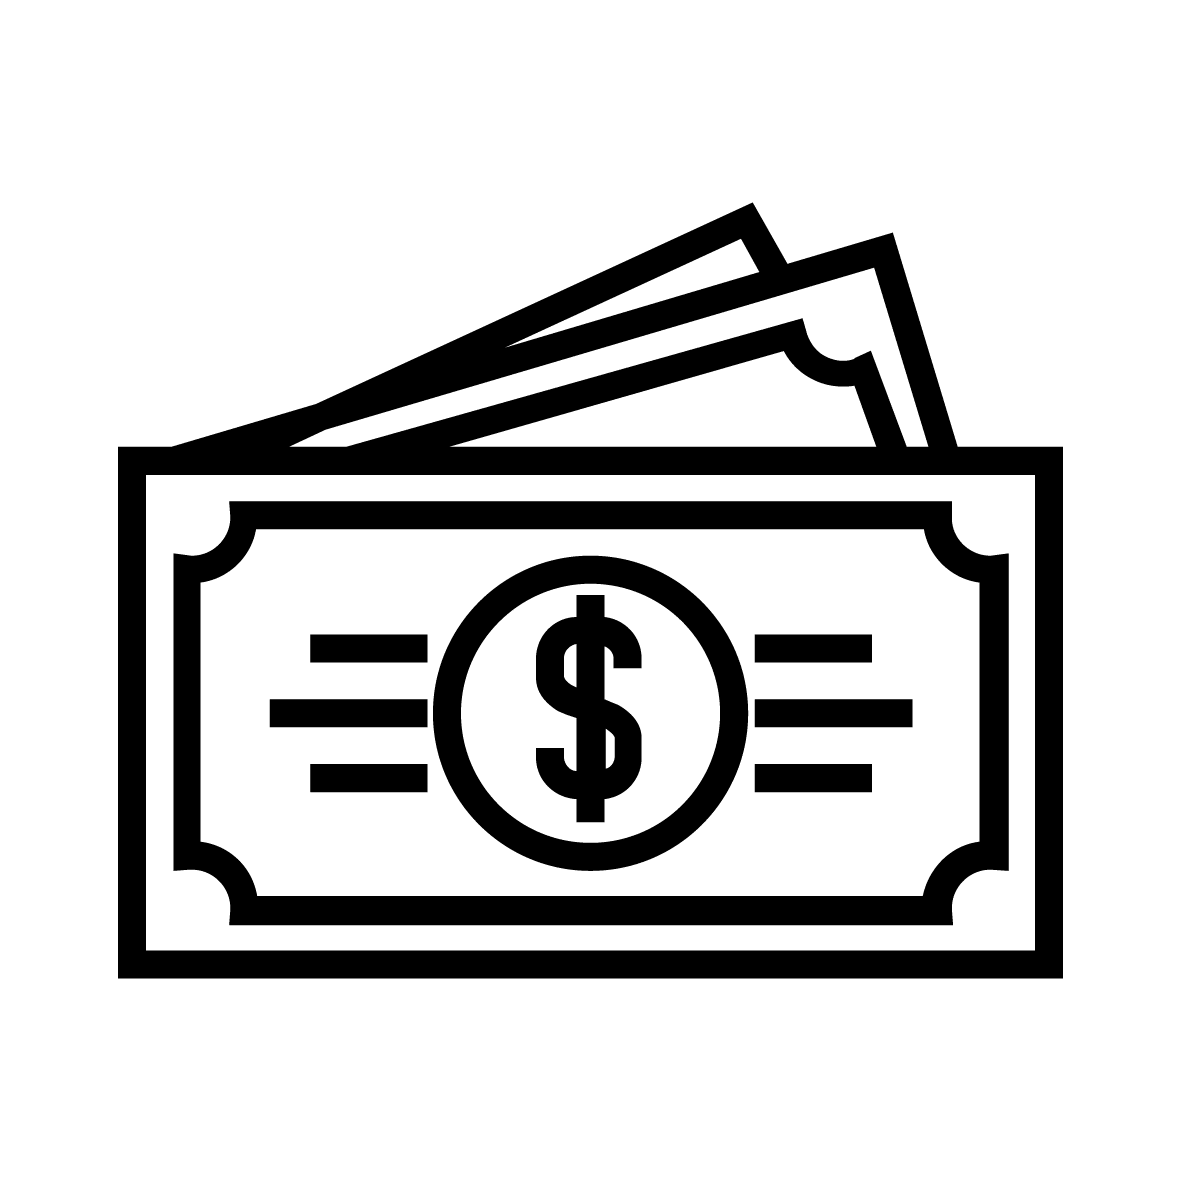 Icons Money Bill Dollar Computer Bank Stock PNG Image